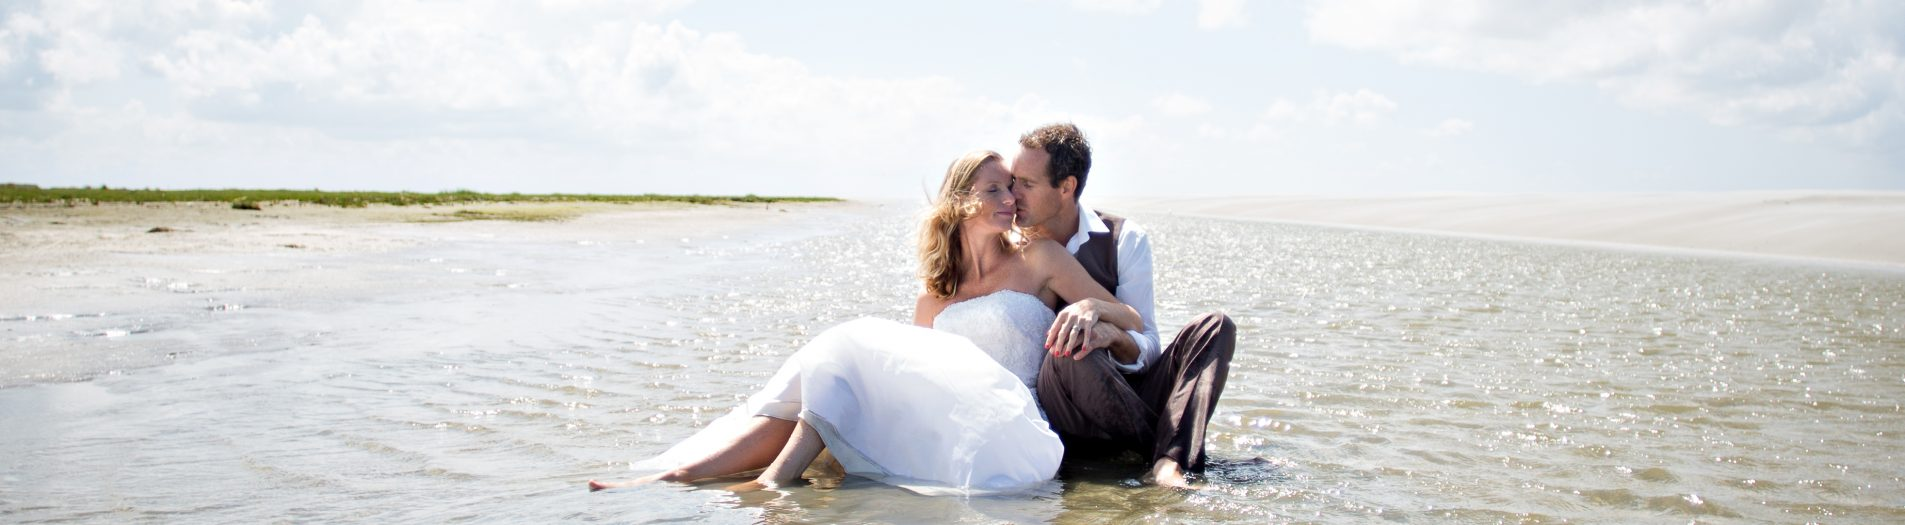 Loveshoot & Trash the dress  I  Schiermonnikoog